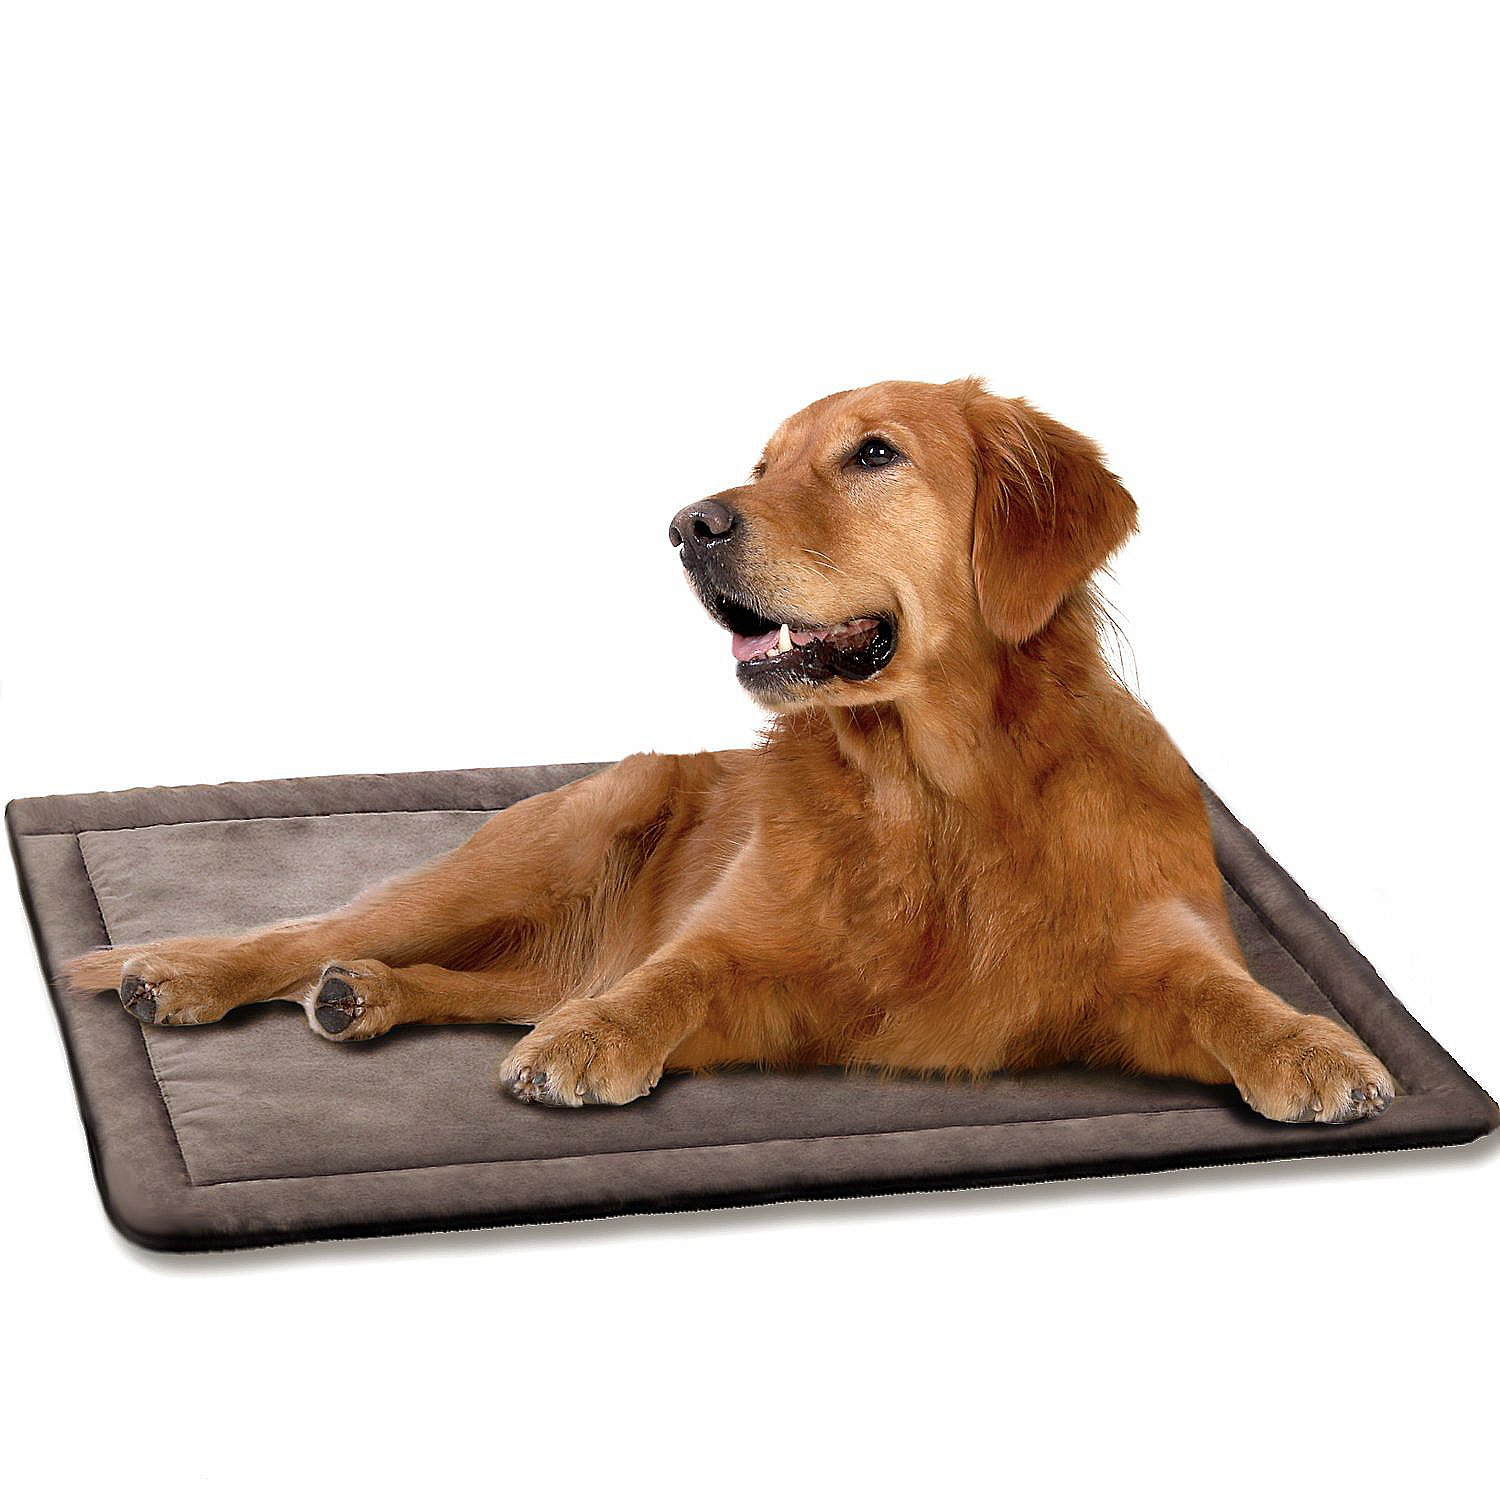 DogJog Dog kennel pad Washable Mat Warm Breathable Comfortable Dog bed for crate 35'' x 23''